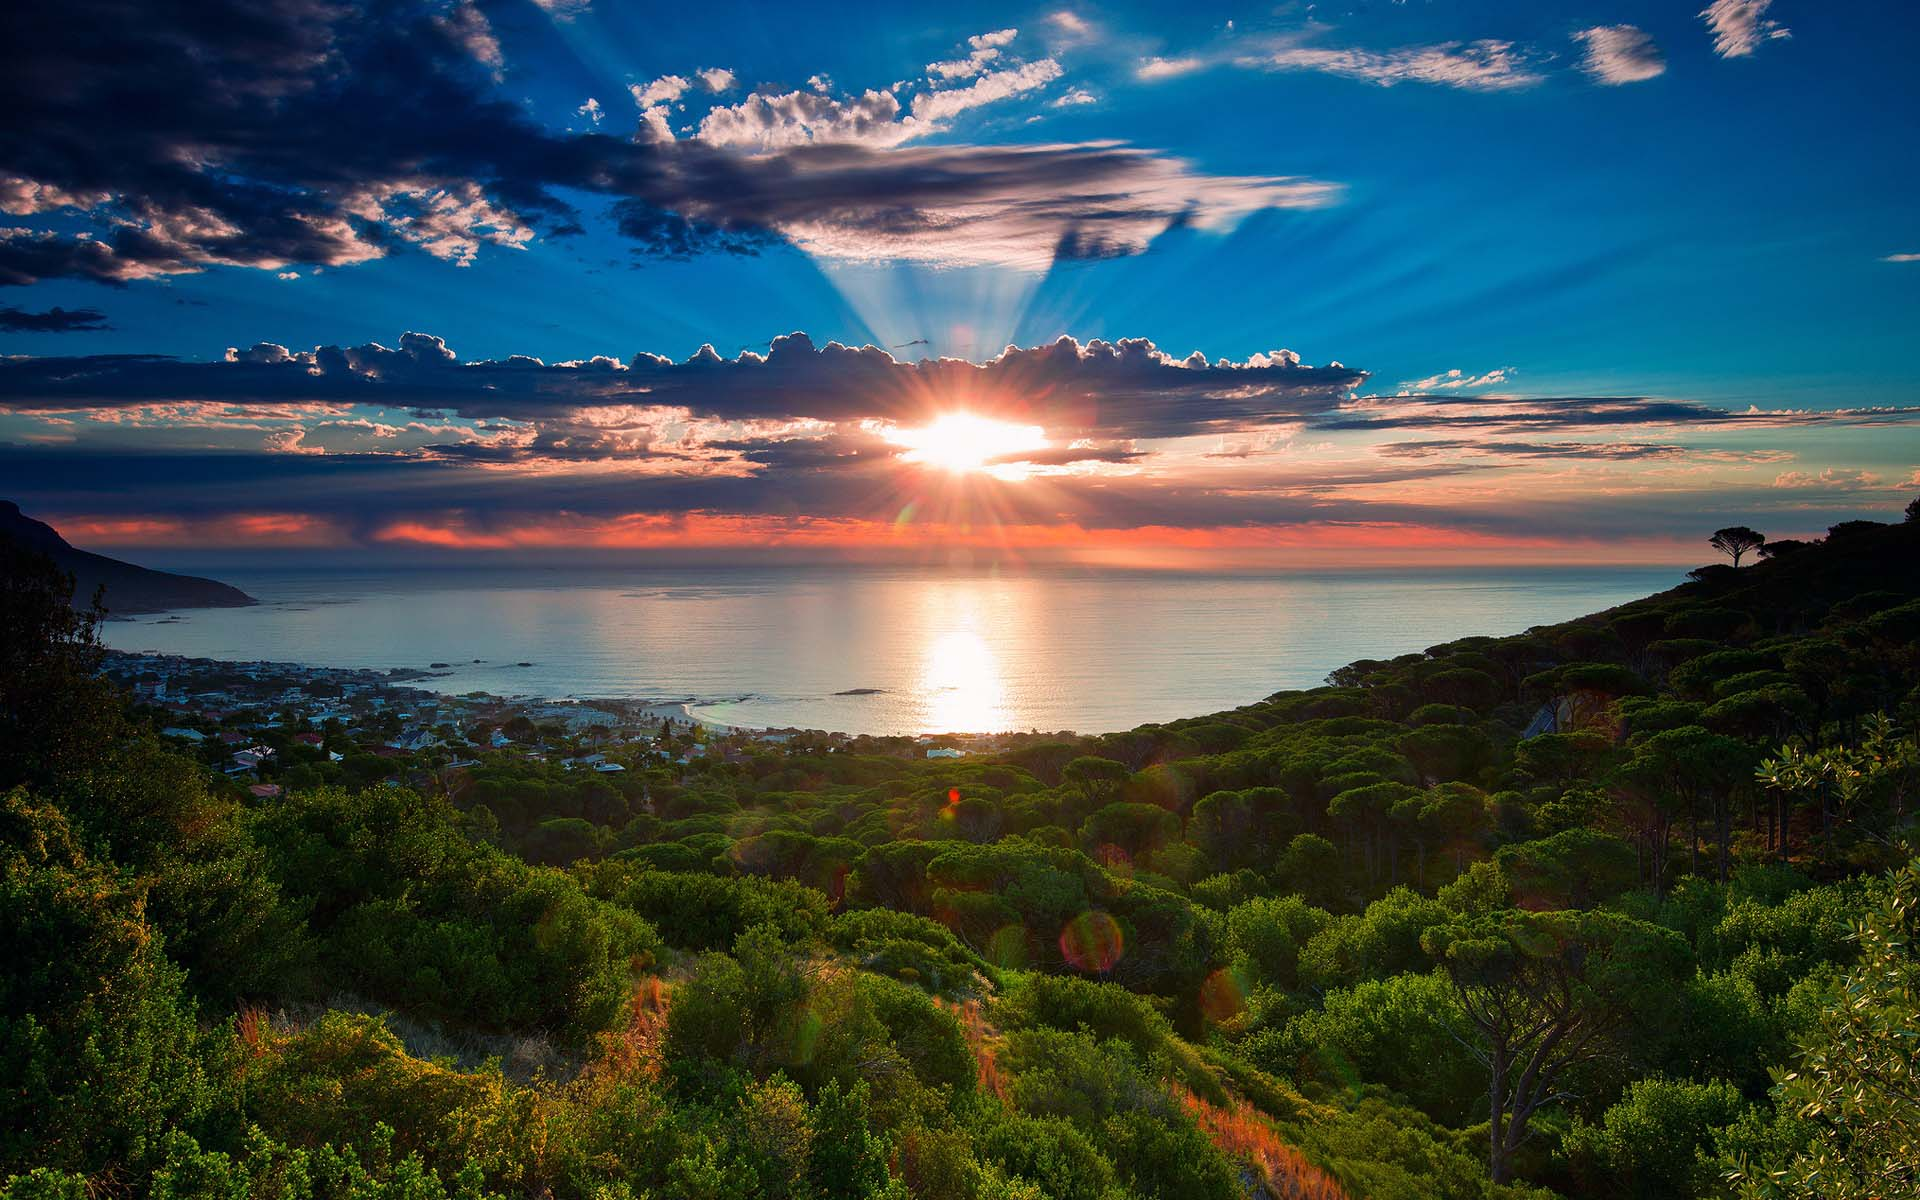 http://www.pre-tend.com/wp-content/uploads/2015/01/South-Africa-Cape-Town-sunset-scenery-sea-coast-sky-clouds.jpg